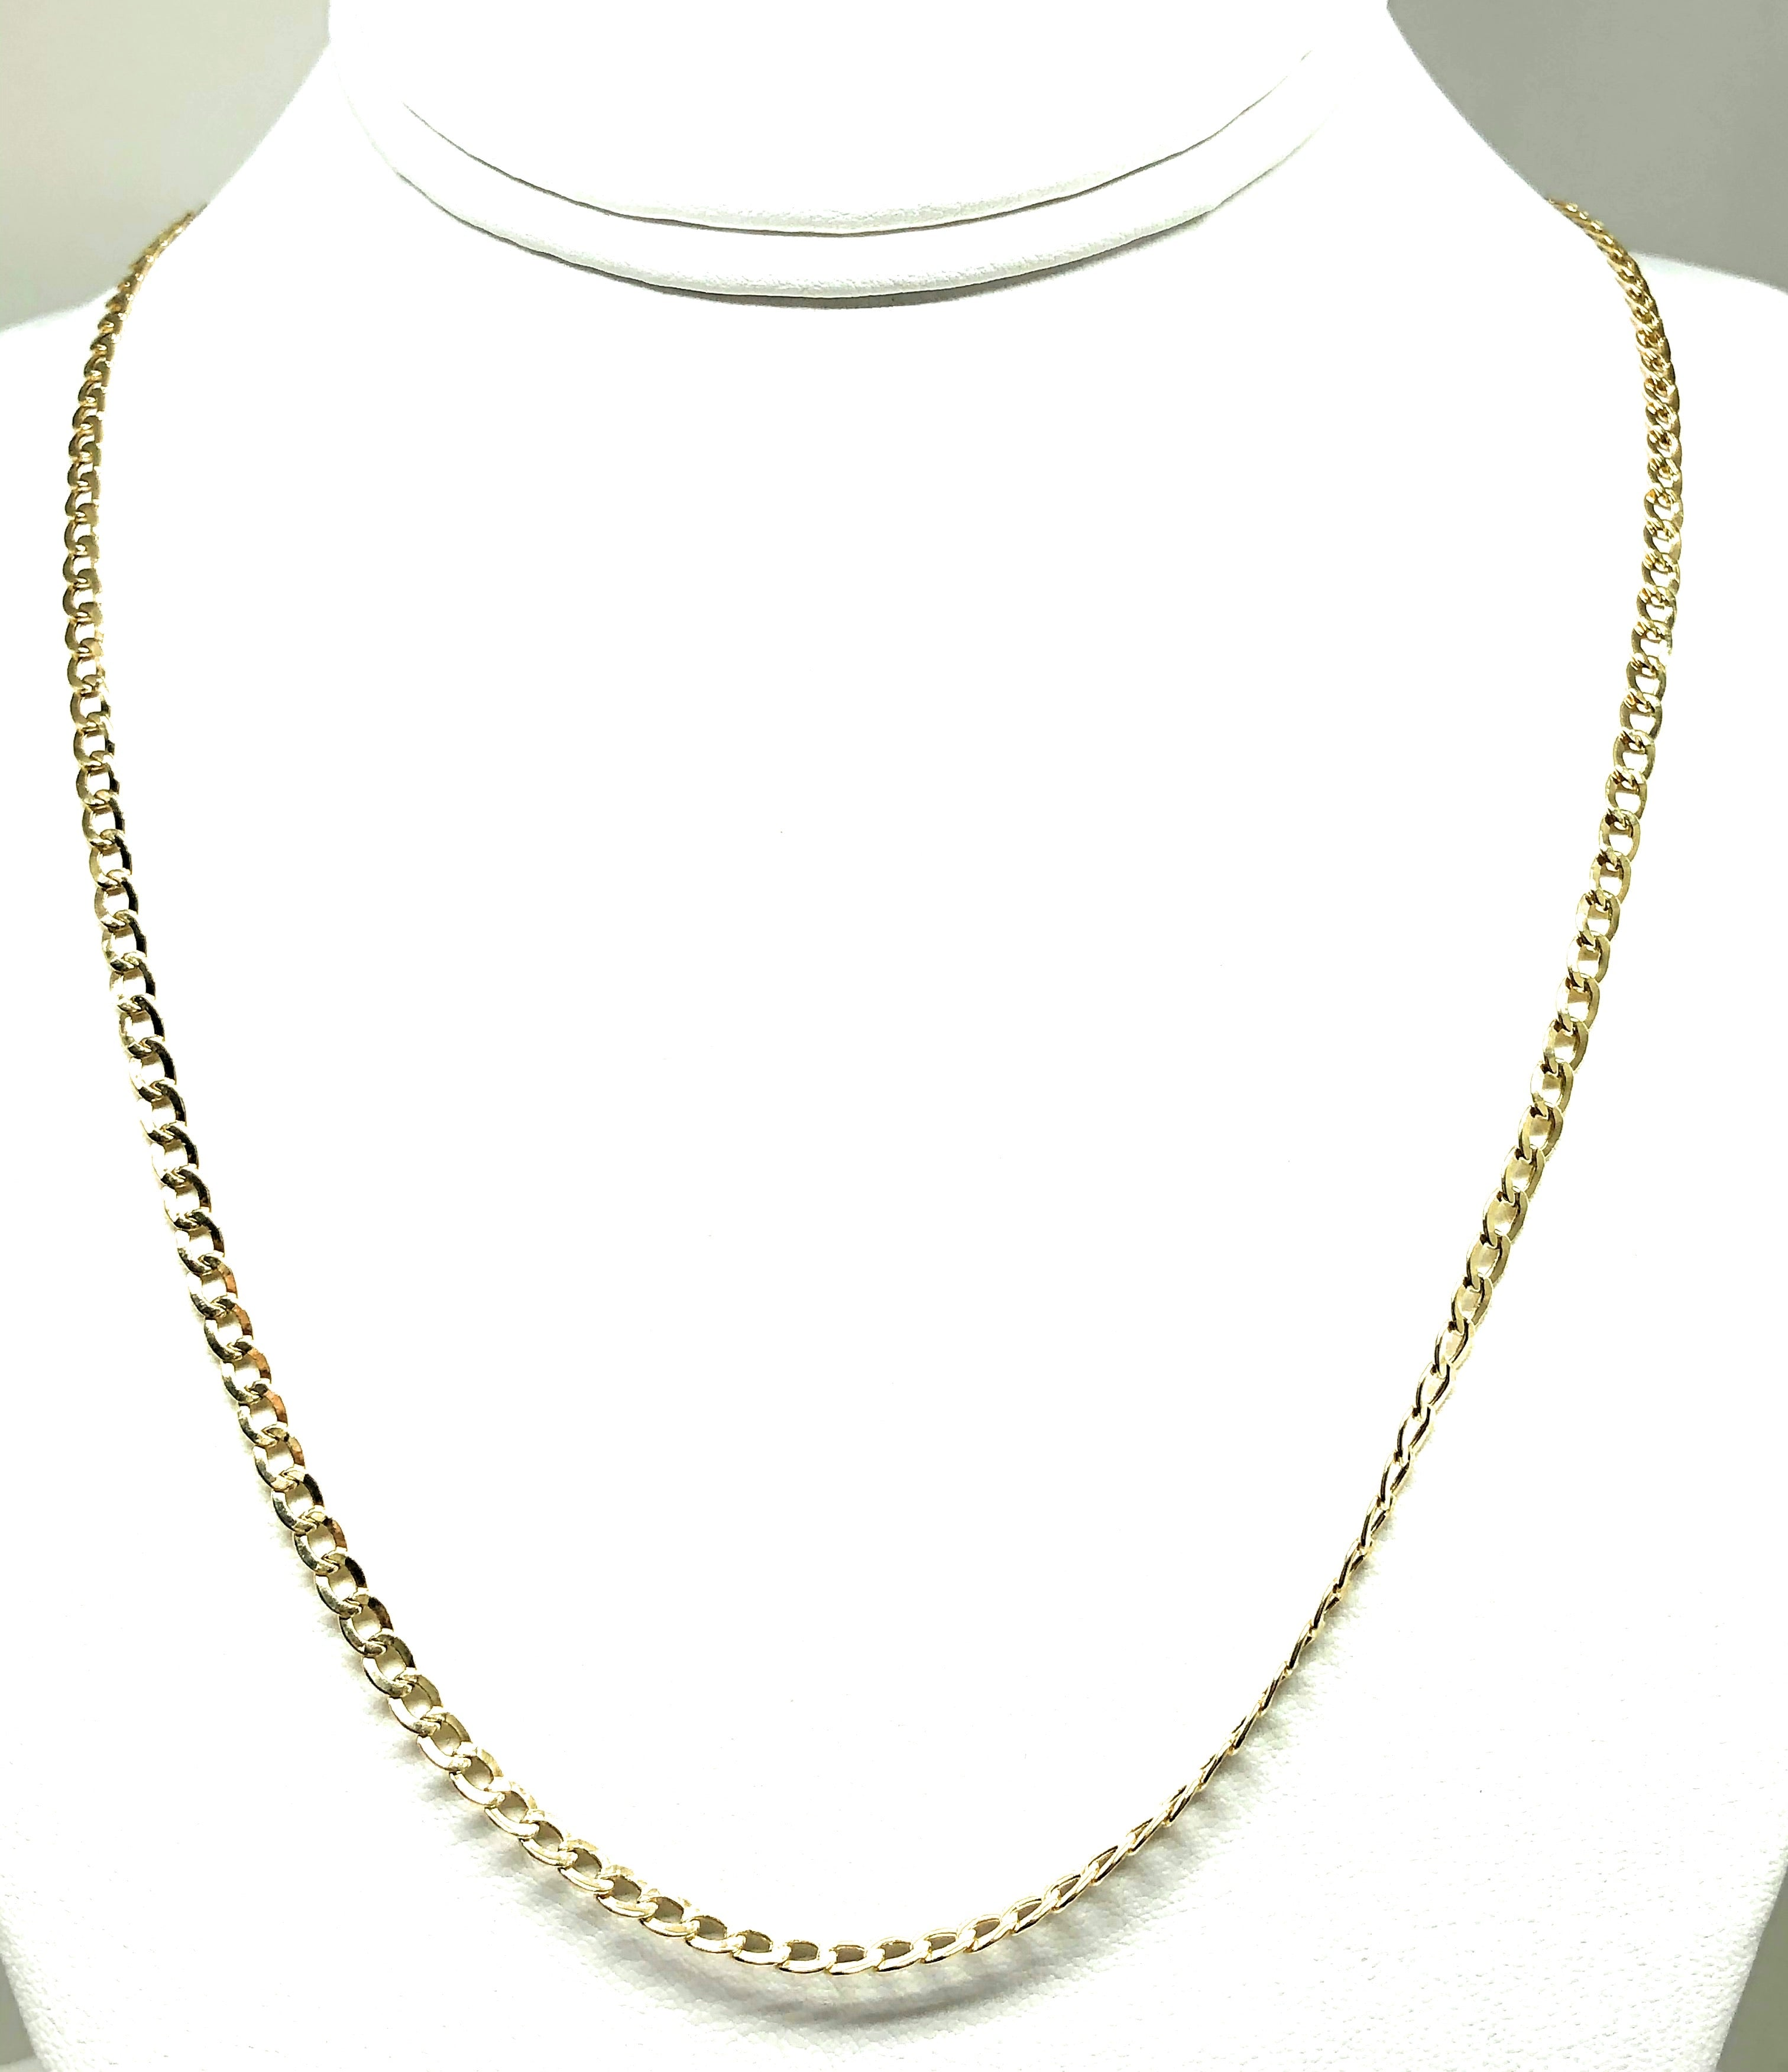 10k Solid Gold Cuban Link Chain 22-24 inches 3.6mm